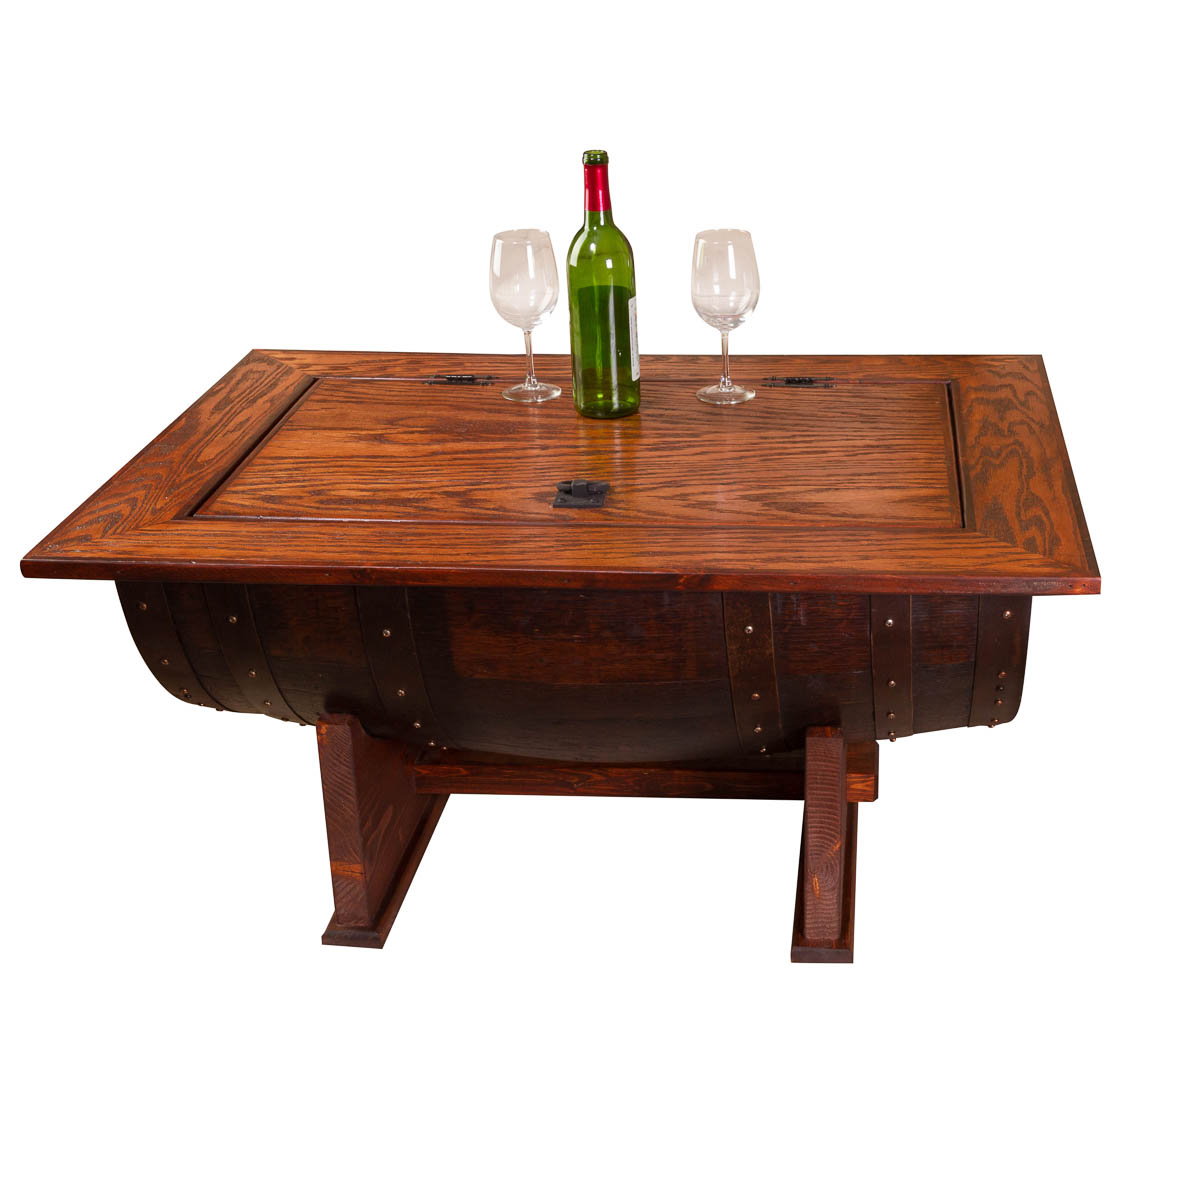 decorating wine barrel accent table cask authentic furniture whitefish bar stools made from barrels ideas full size industrial tall narrow bedside dining chairs edmonton